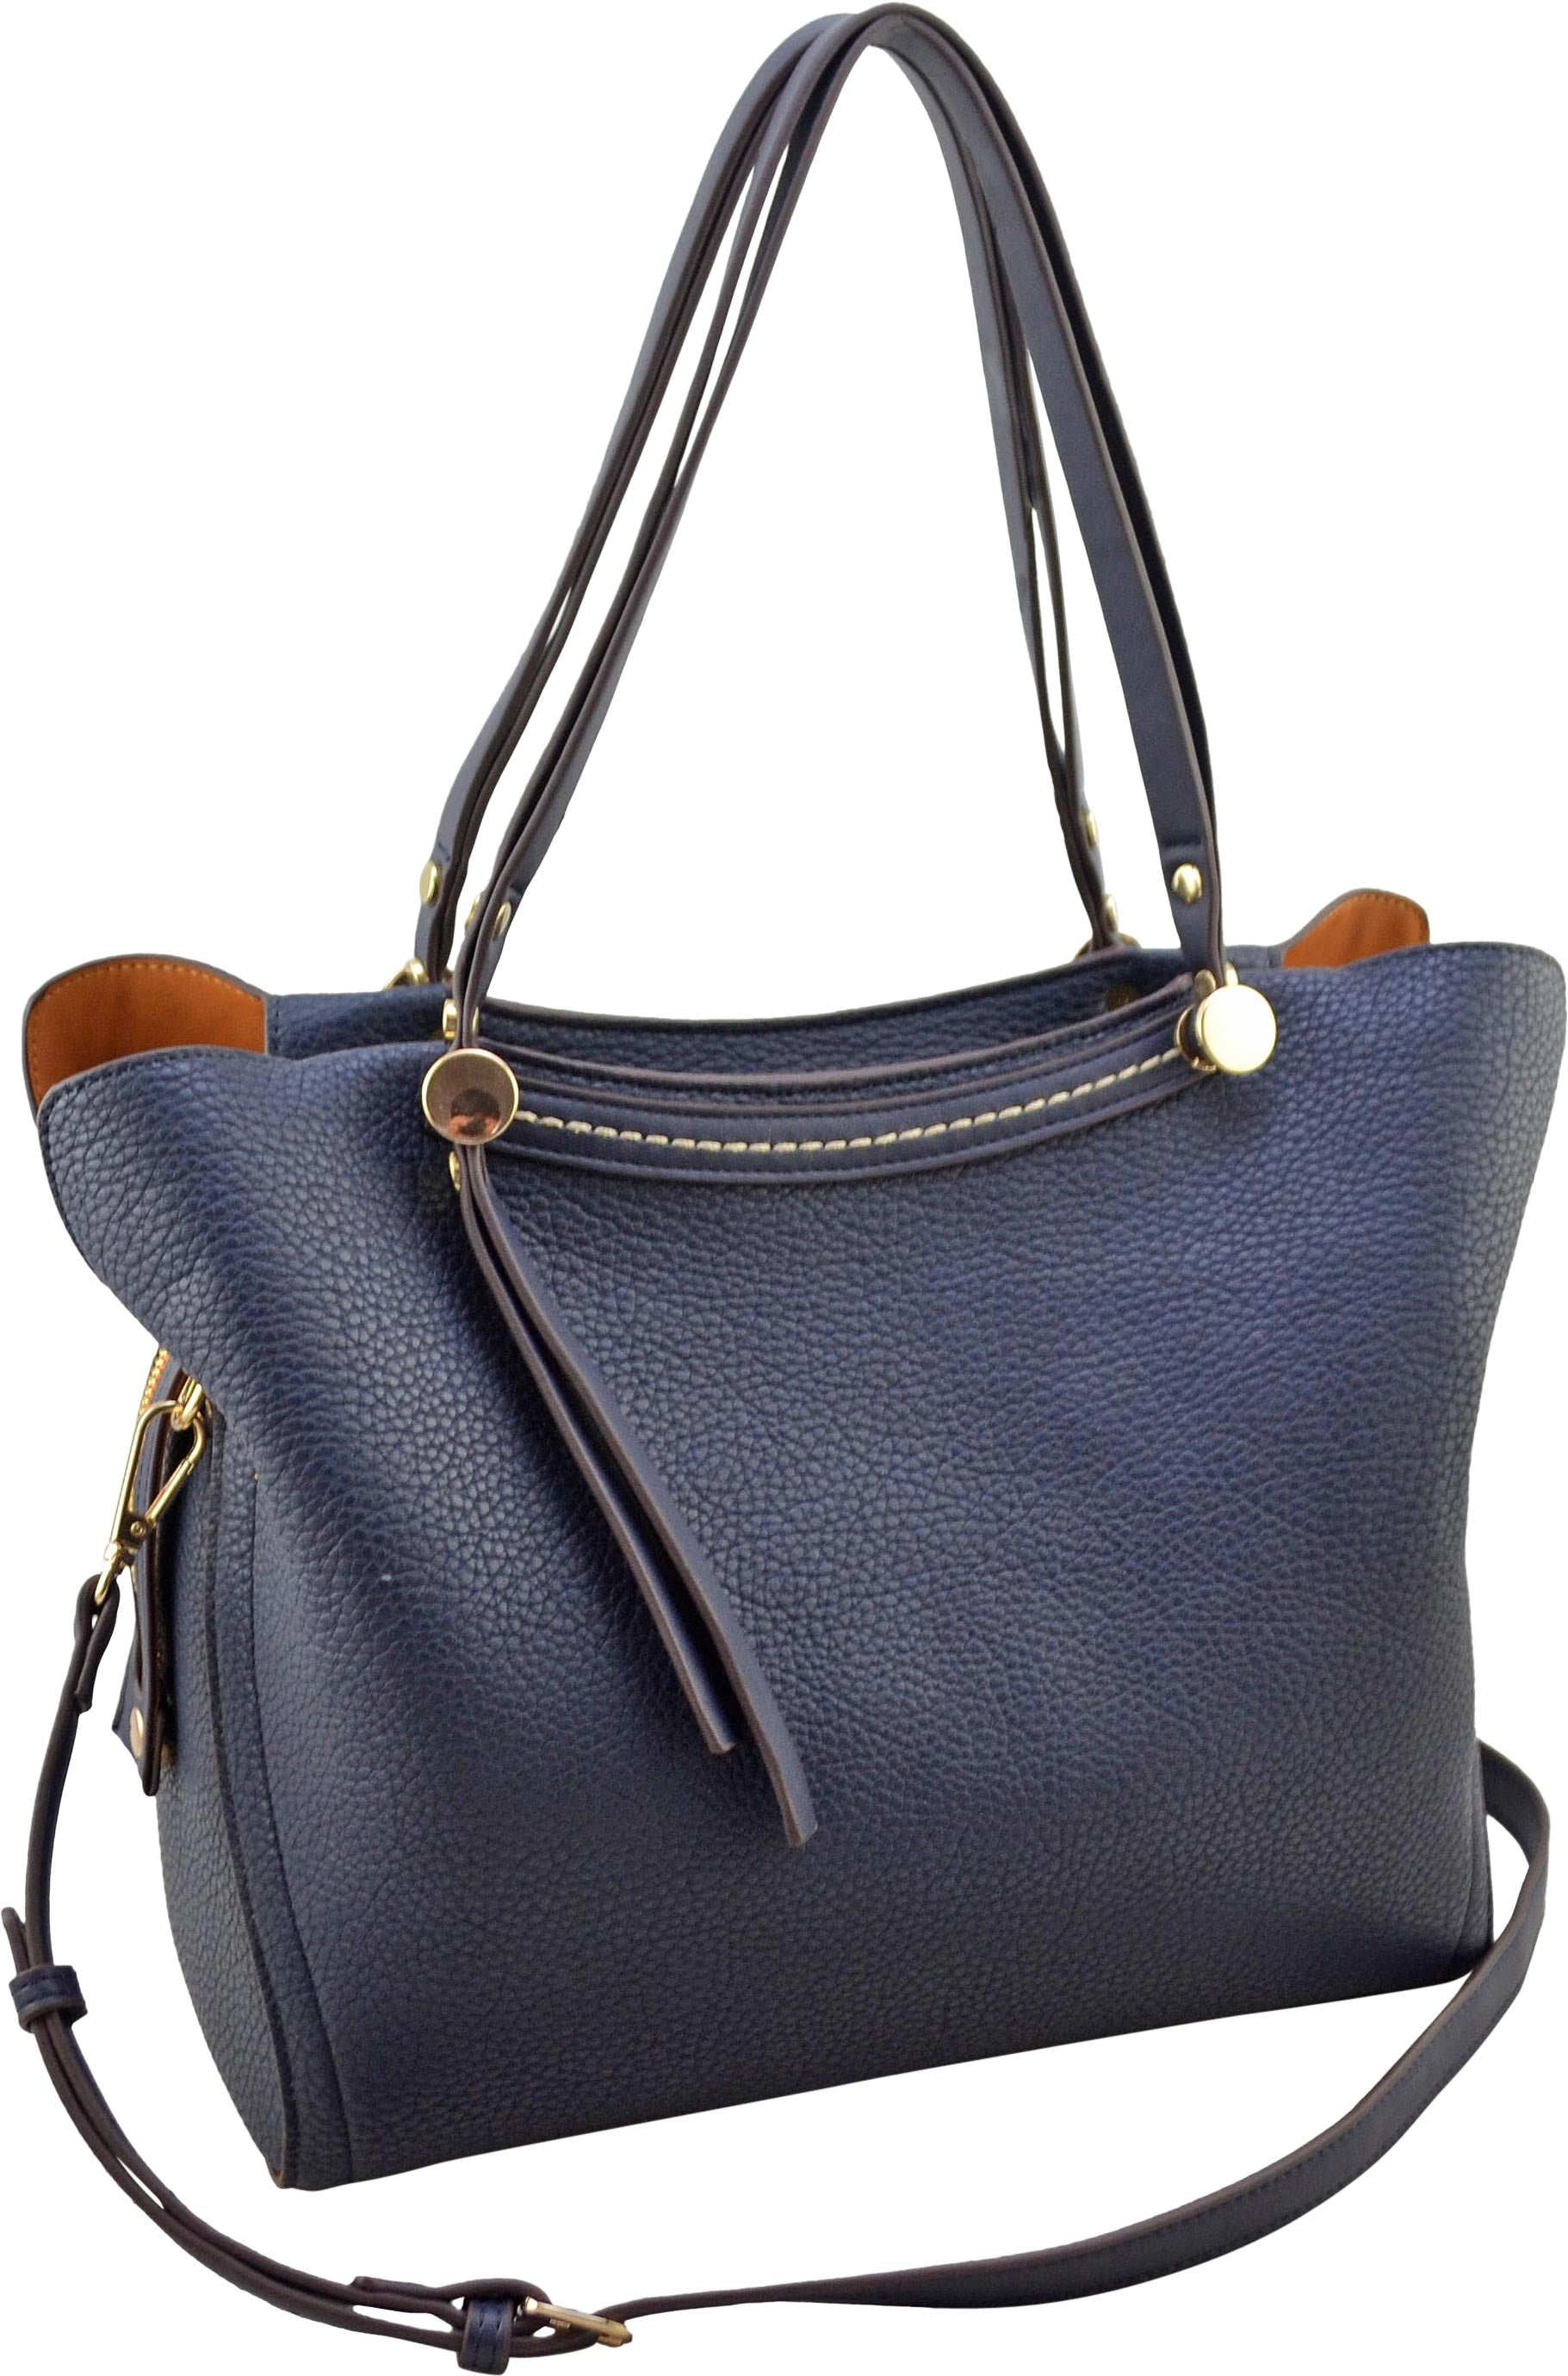 "SRB25214 - Pebble Satchel in Navy by Sondra Roberts. Silver hardware accents with a pepple texture full-size satchel. Perfect carry-all. Zipper closure. Comes with optional cross body strap. 1 interior zip pocket and 2 slip pockets. Faux leather. Imported. Dimensions: 12""W x 10""H x 6""D."